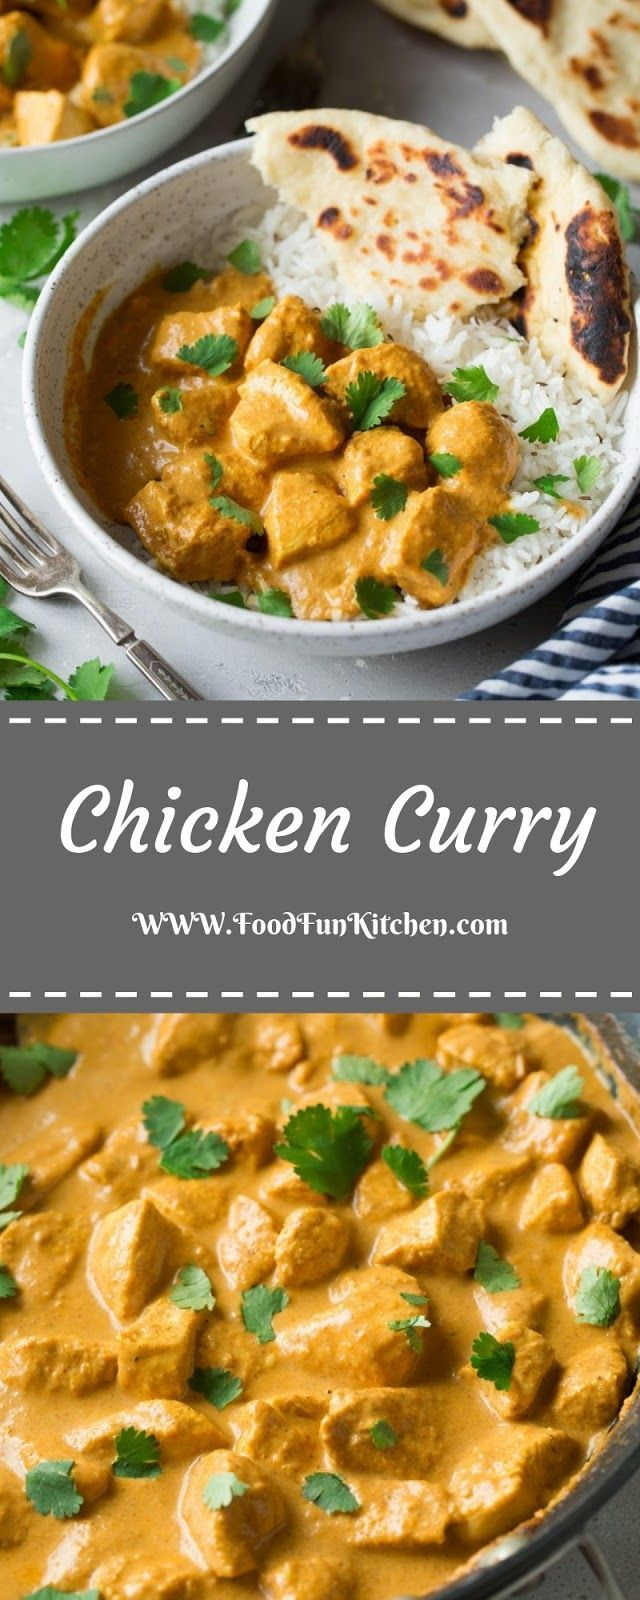 Chicken Curry Food Fun Kitchen Curry Chicken Curry Recipes Healthy Chinese Recipes